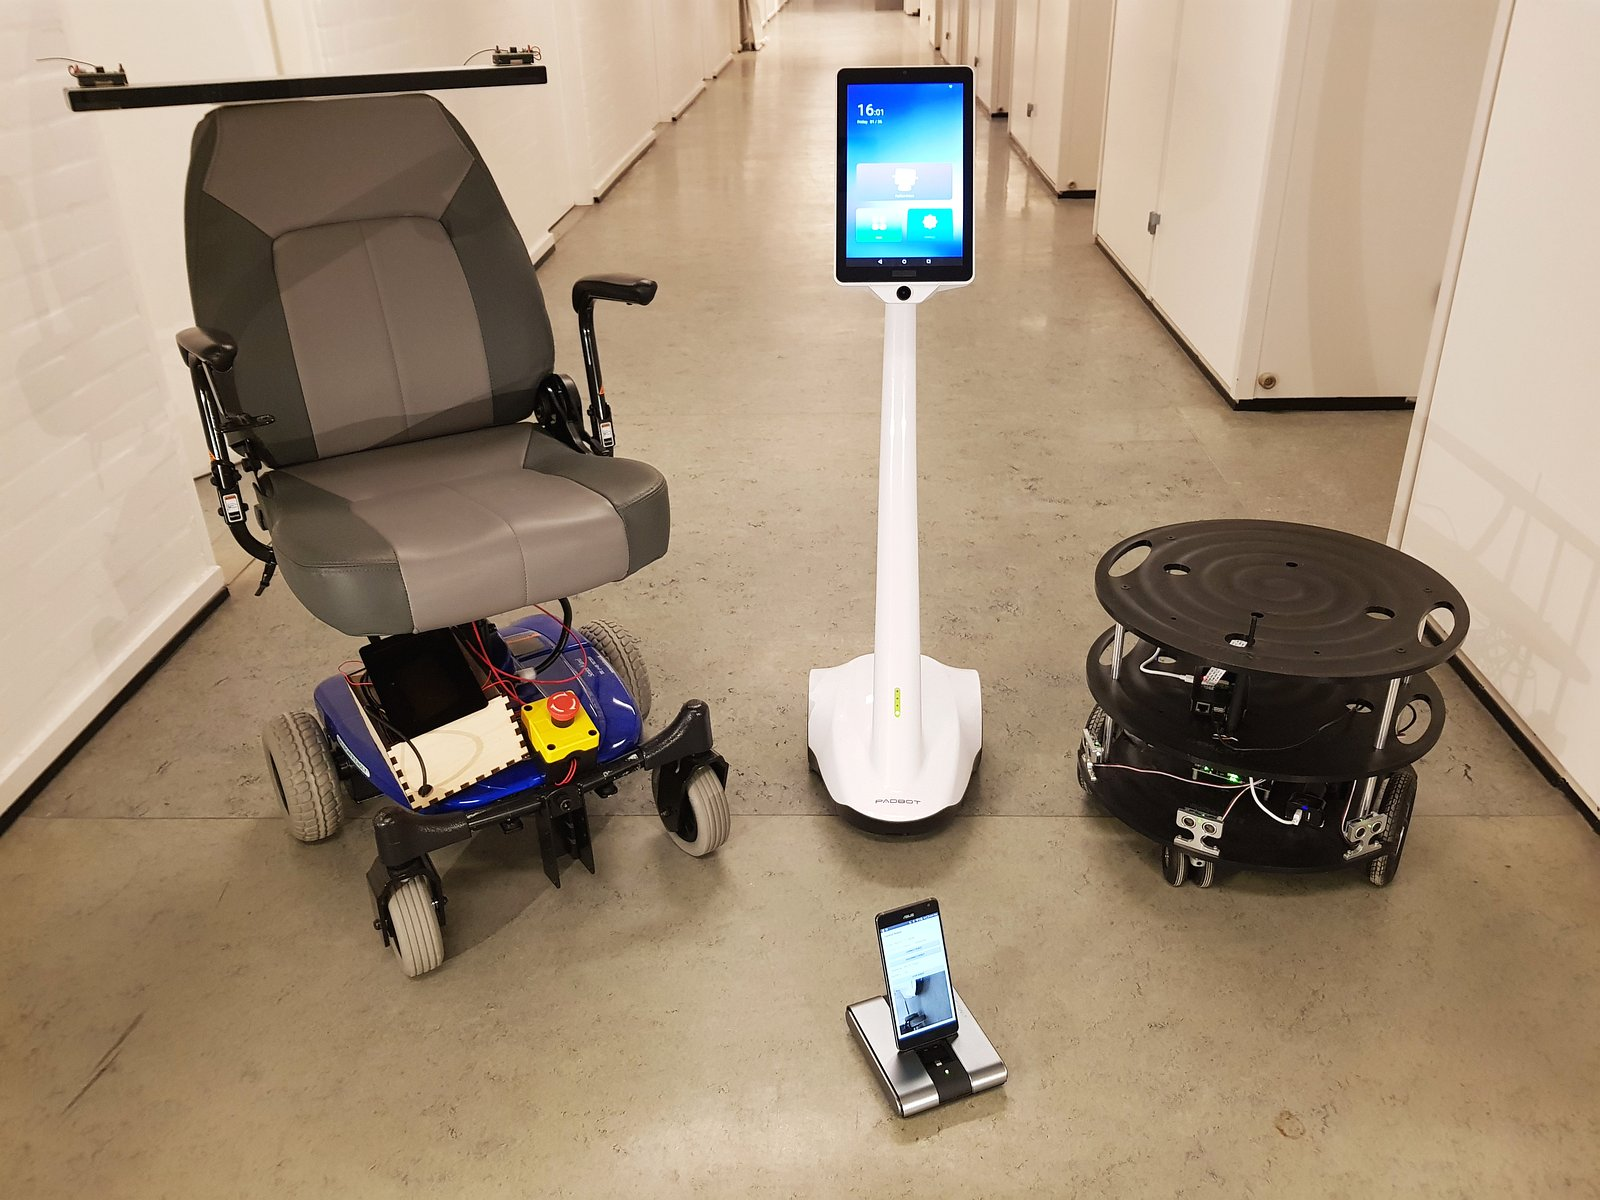 Image of 4 robots